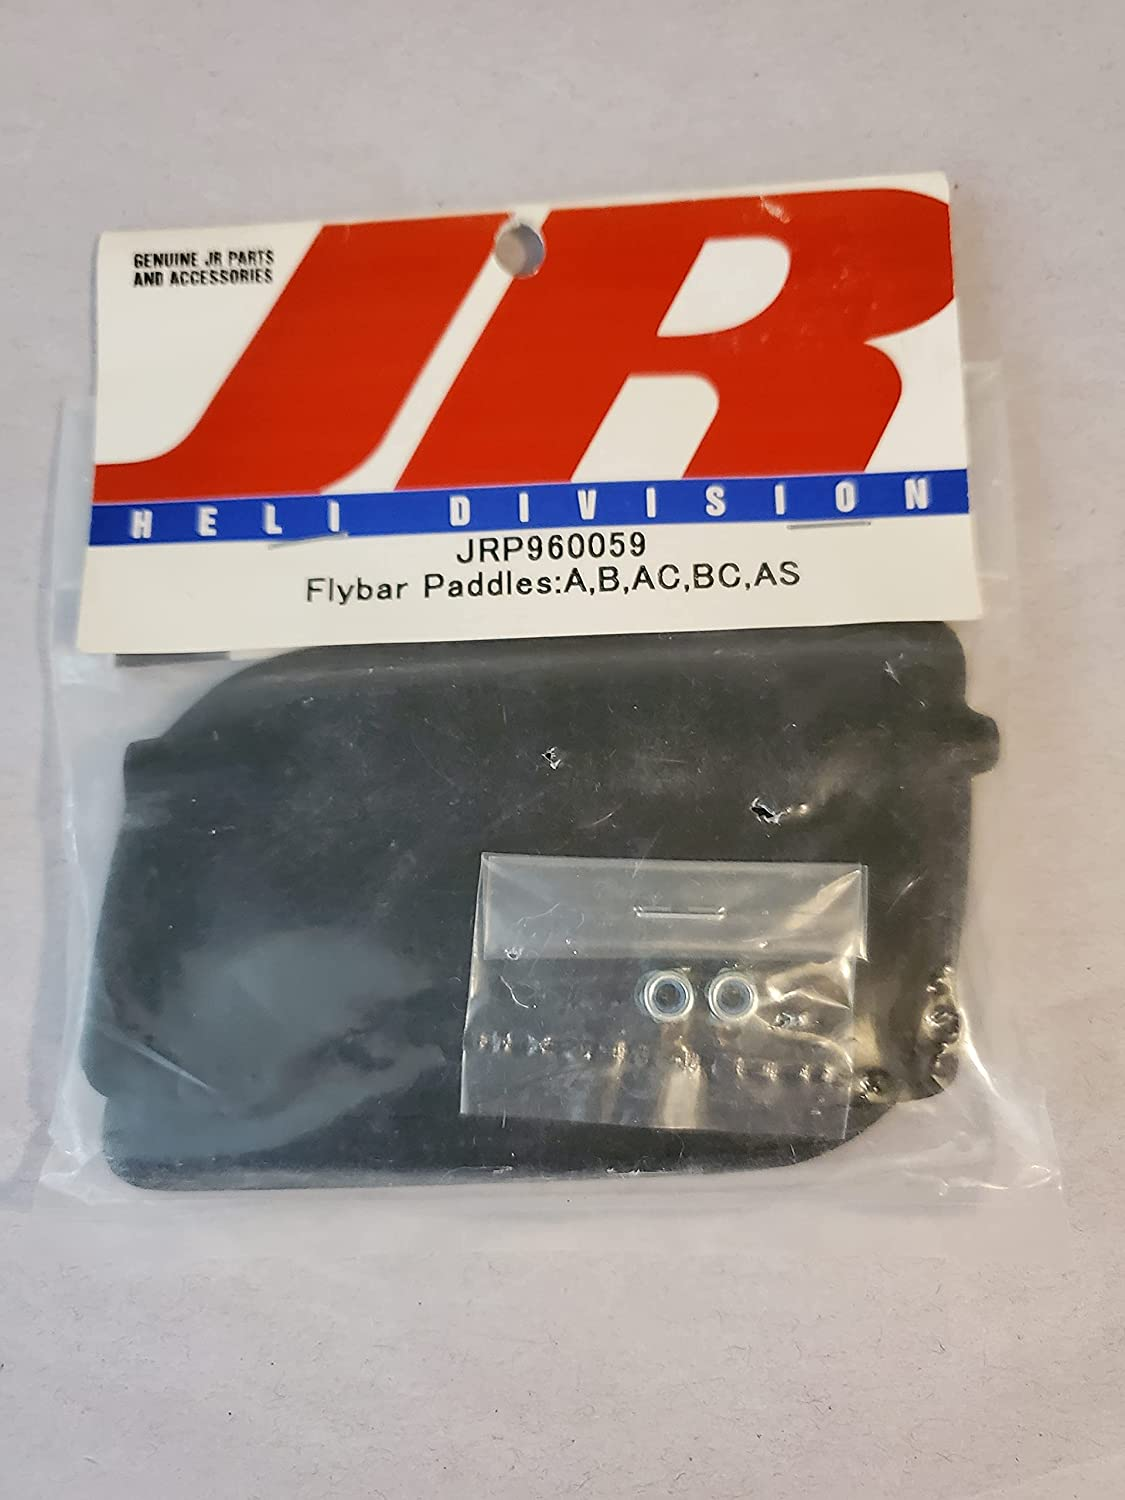 F Bar Paddles: A B AC BC AS Challenge the lowest price of Japan 1 year warranty ☆ JRP960059